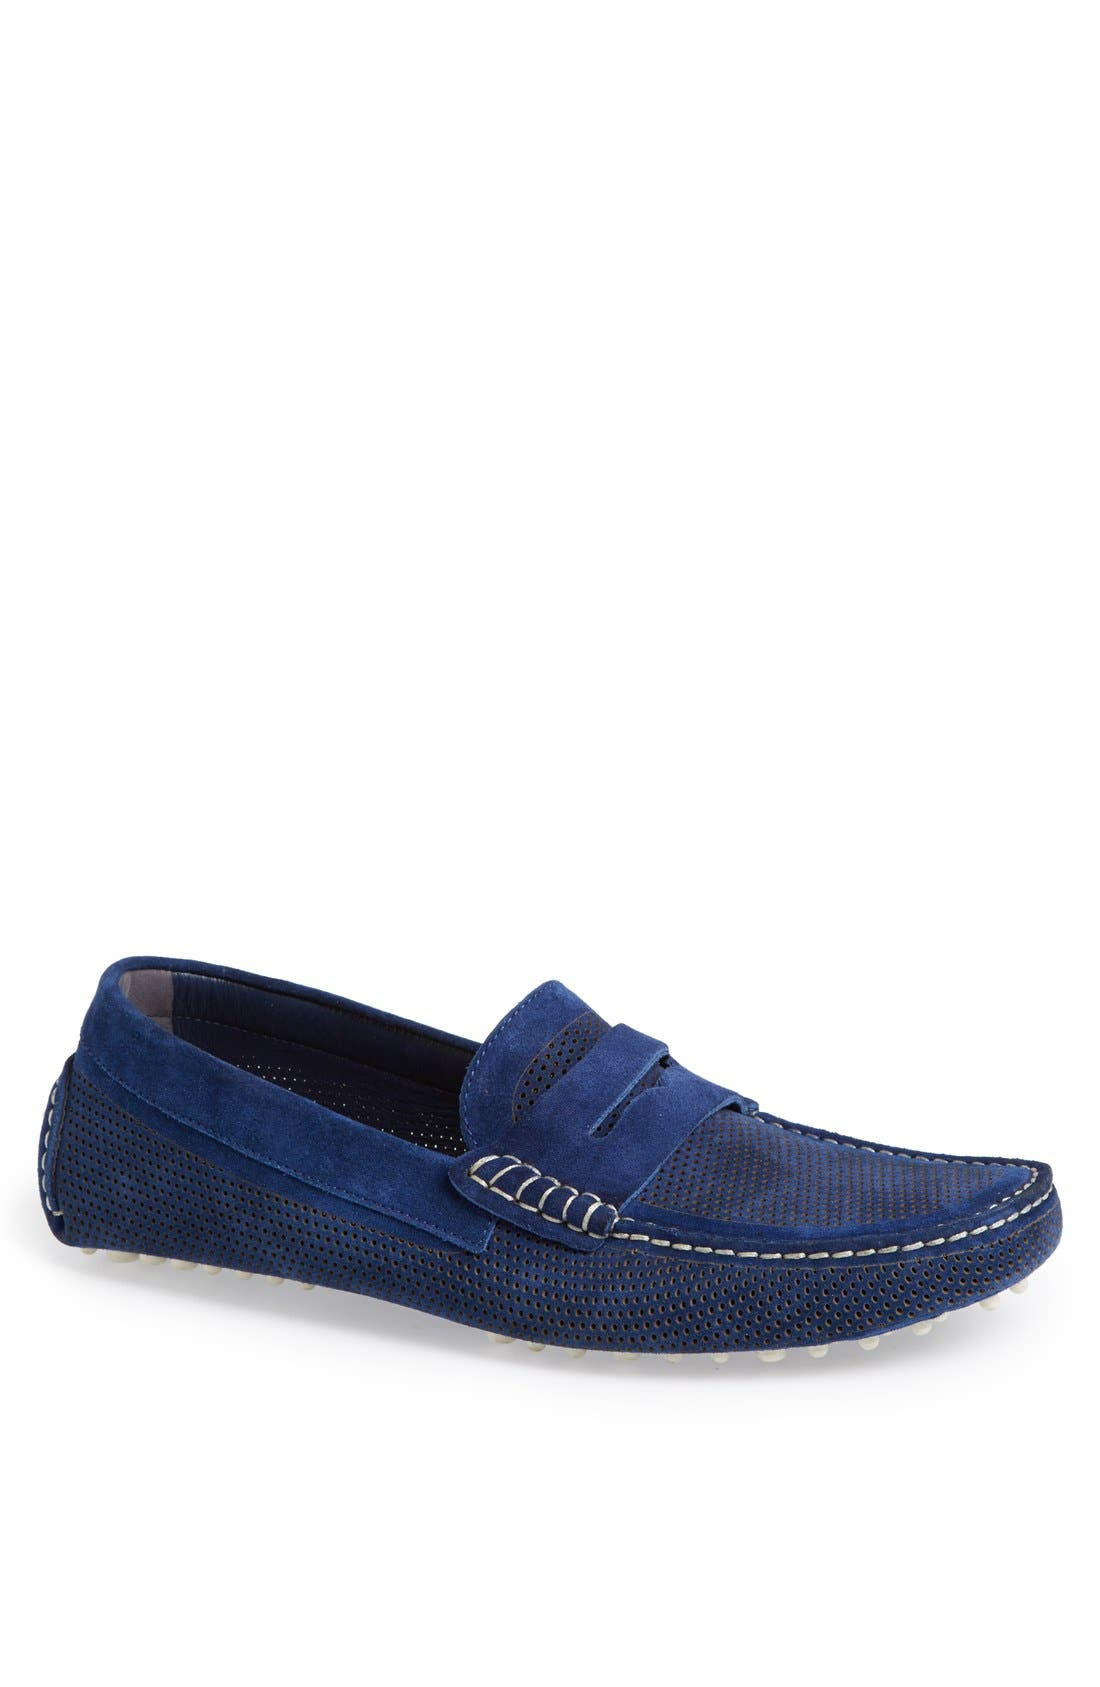 Main Image - Canali Perforated Suede Driving Shoe (Men)